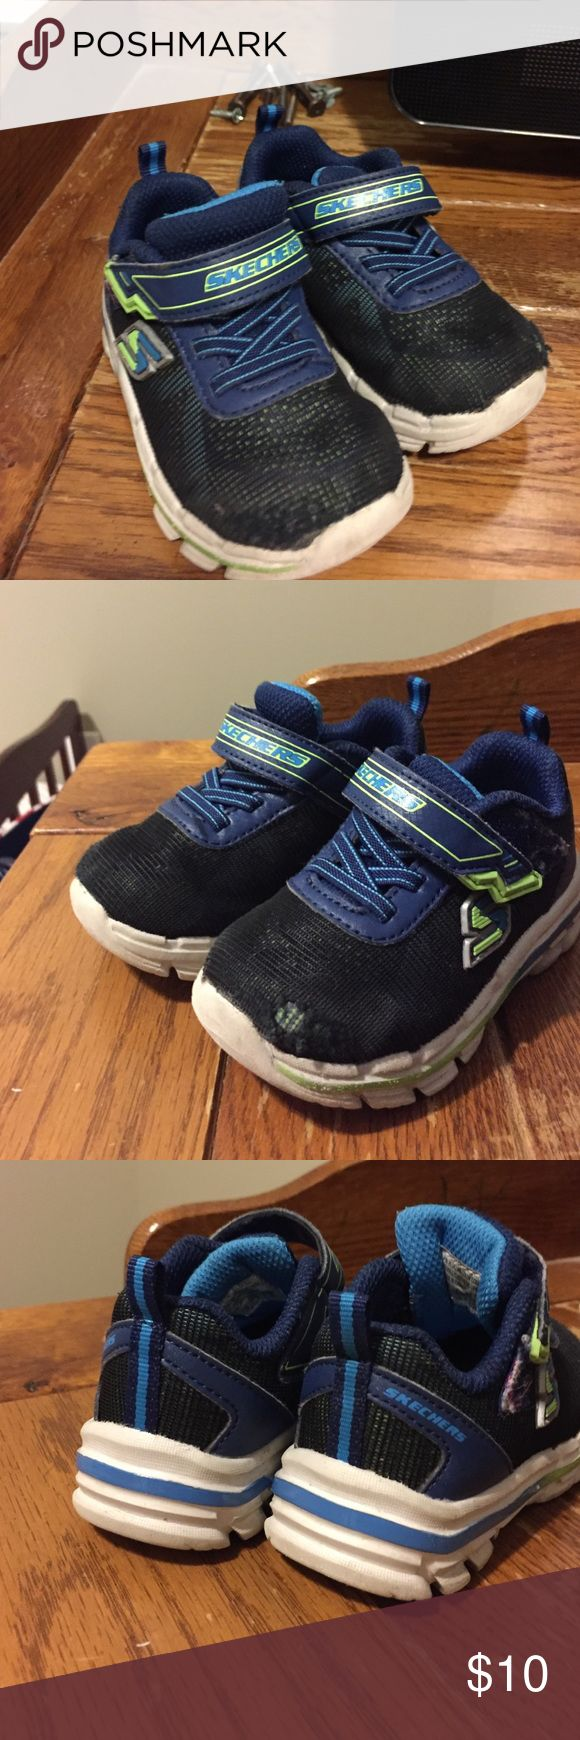 Sketchers memory foam sneaker Superficial wear in toe, reflected in pictures and price. Great tennis shoe- memory foam sole, Velcro inclosure Skechers Shoes Sneakers